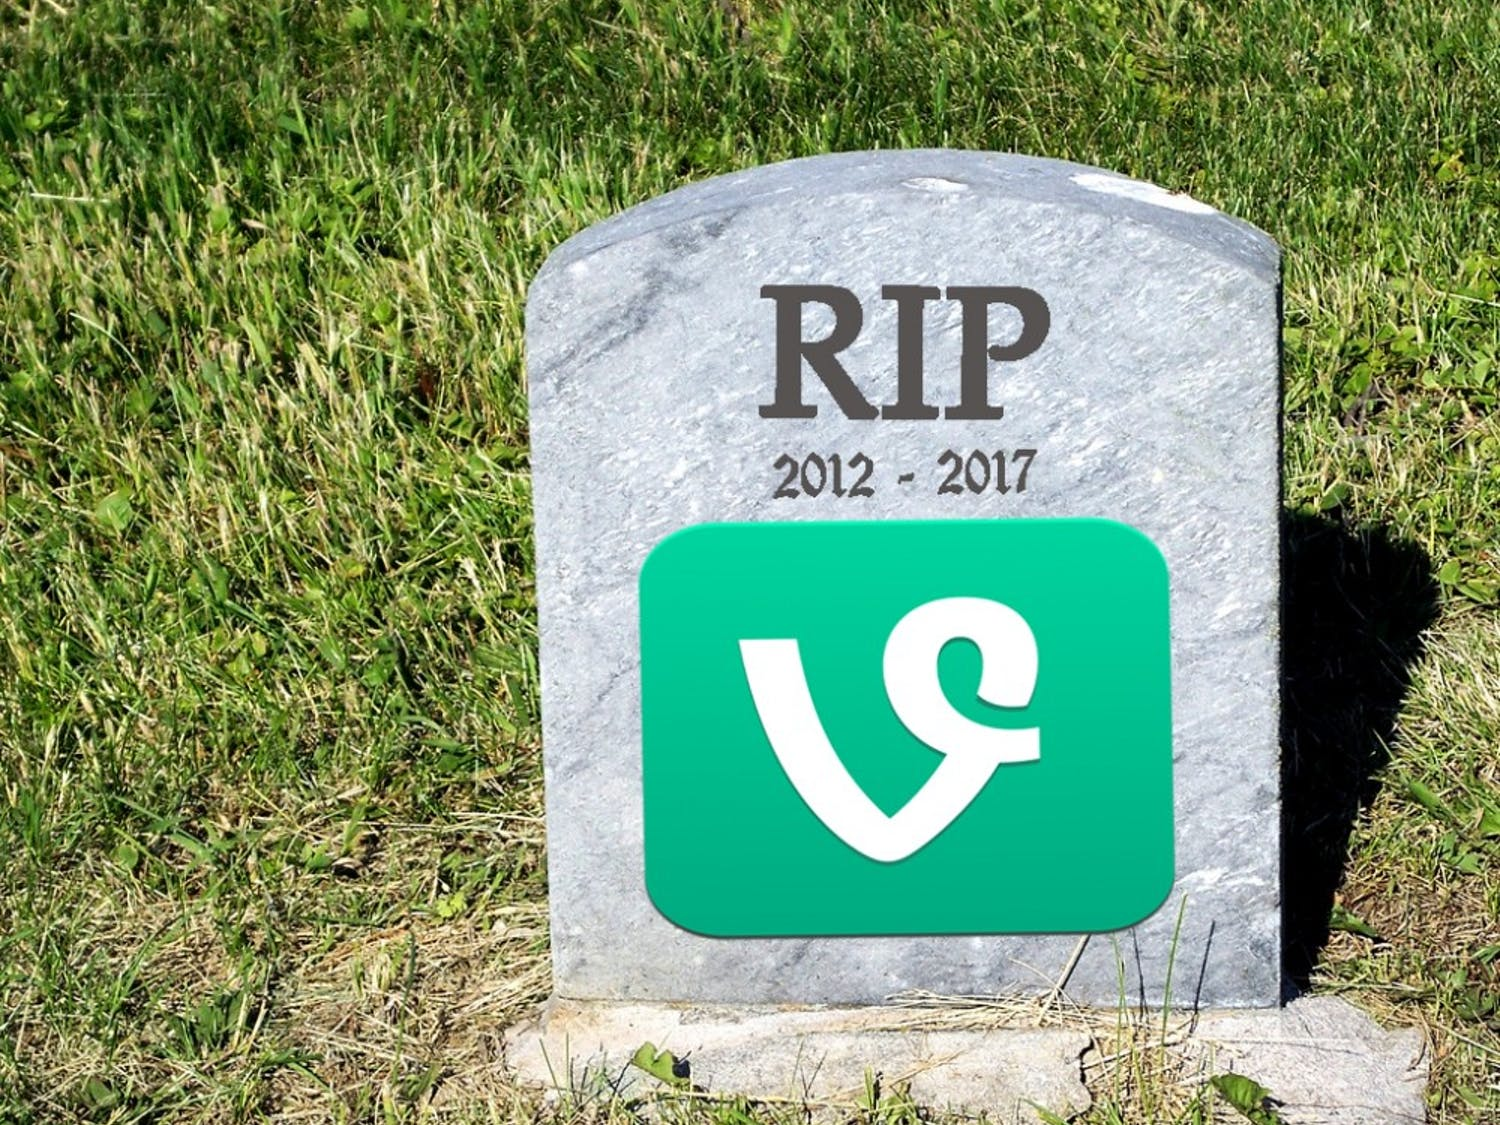 The death of Vine meant the death of life as we know it.